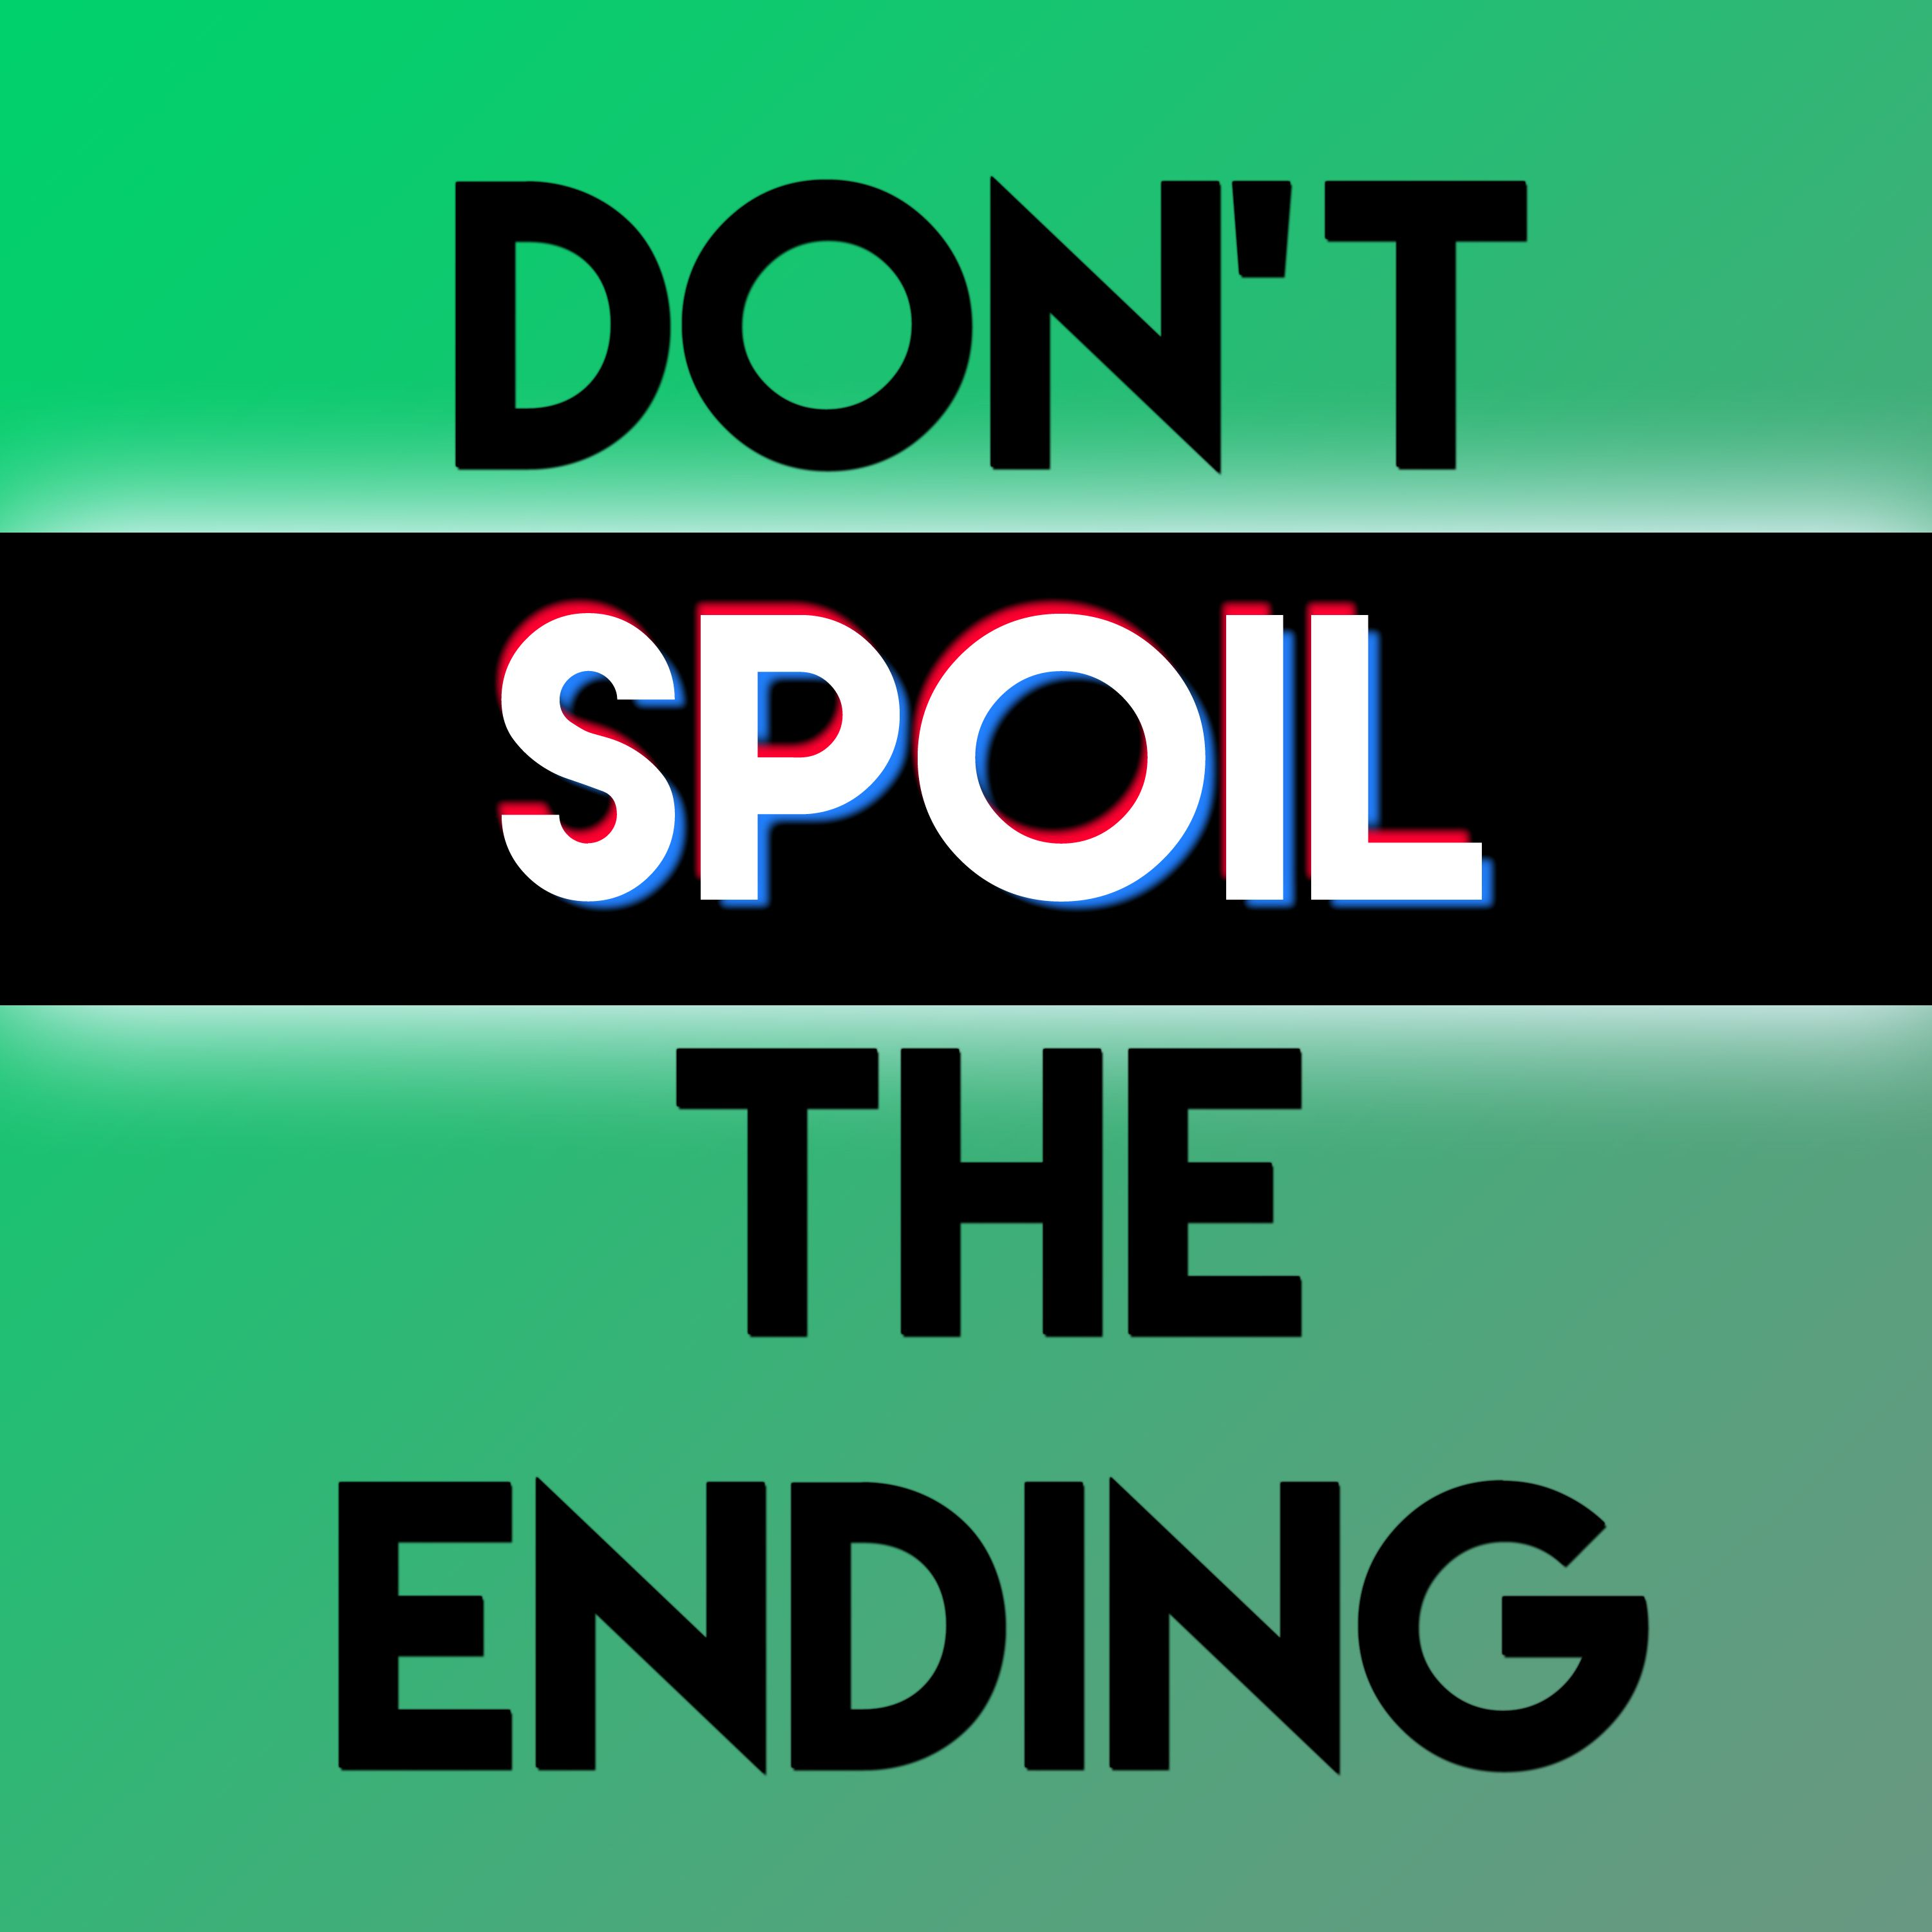 Don't Spoil The Ending